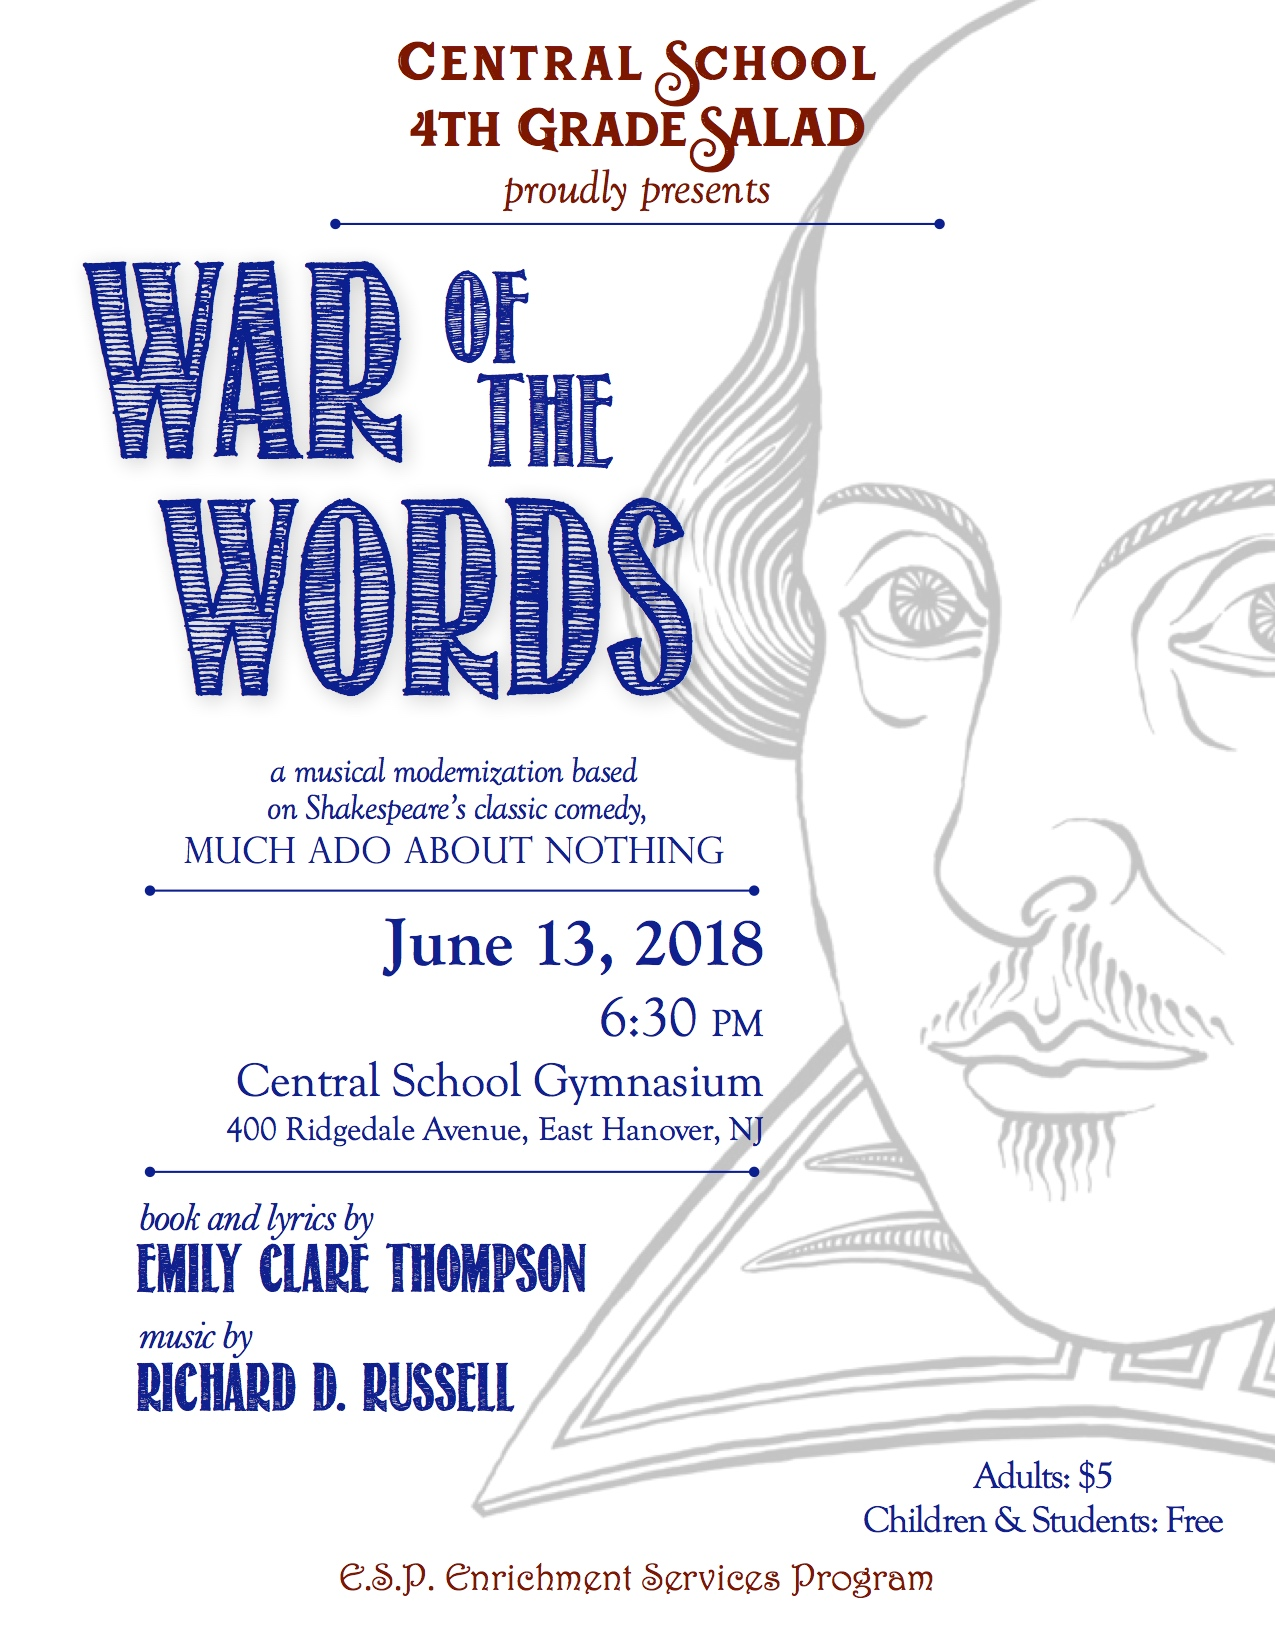 WAR OF THE WORDS has two new songs! Coming June 13 • The Musicals of